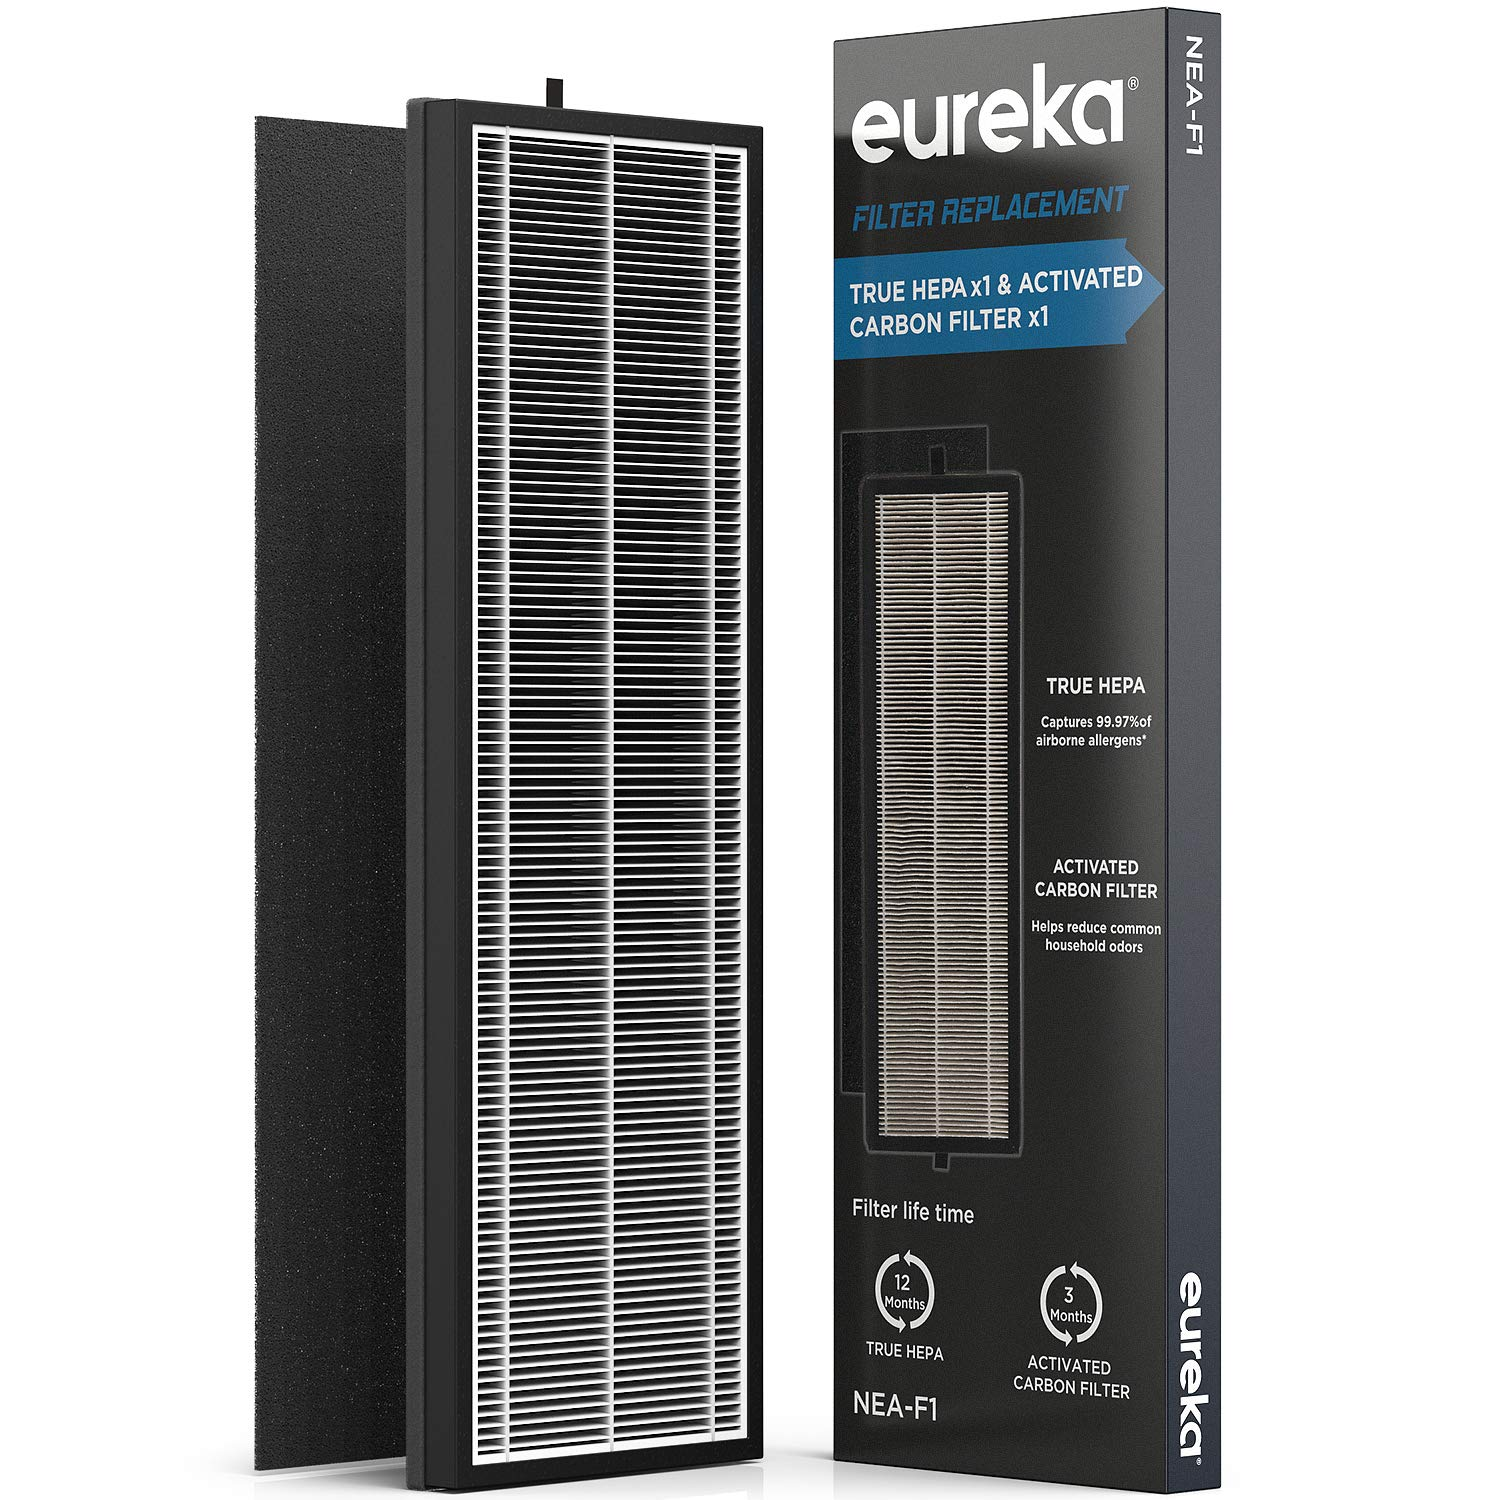 Eureka NEA120 Air Purifier Filter NEA-F1, True HEPA Filter x 1 & Activated Carbon Filter x 1, Replacement for InstantClear NEA120